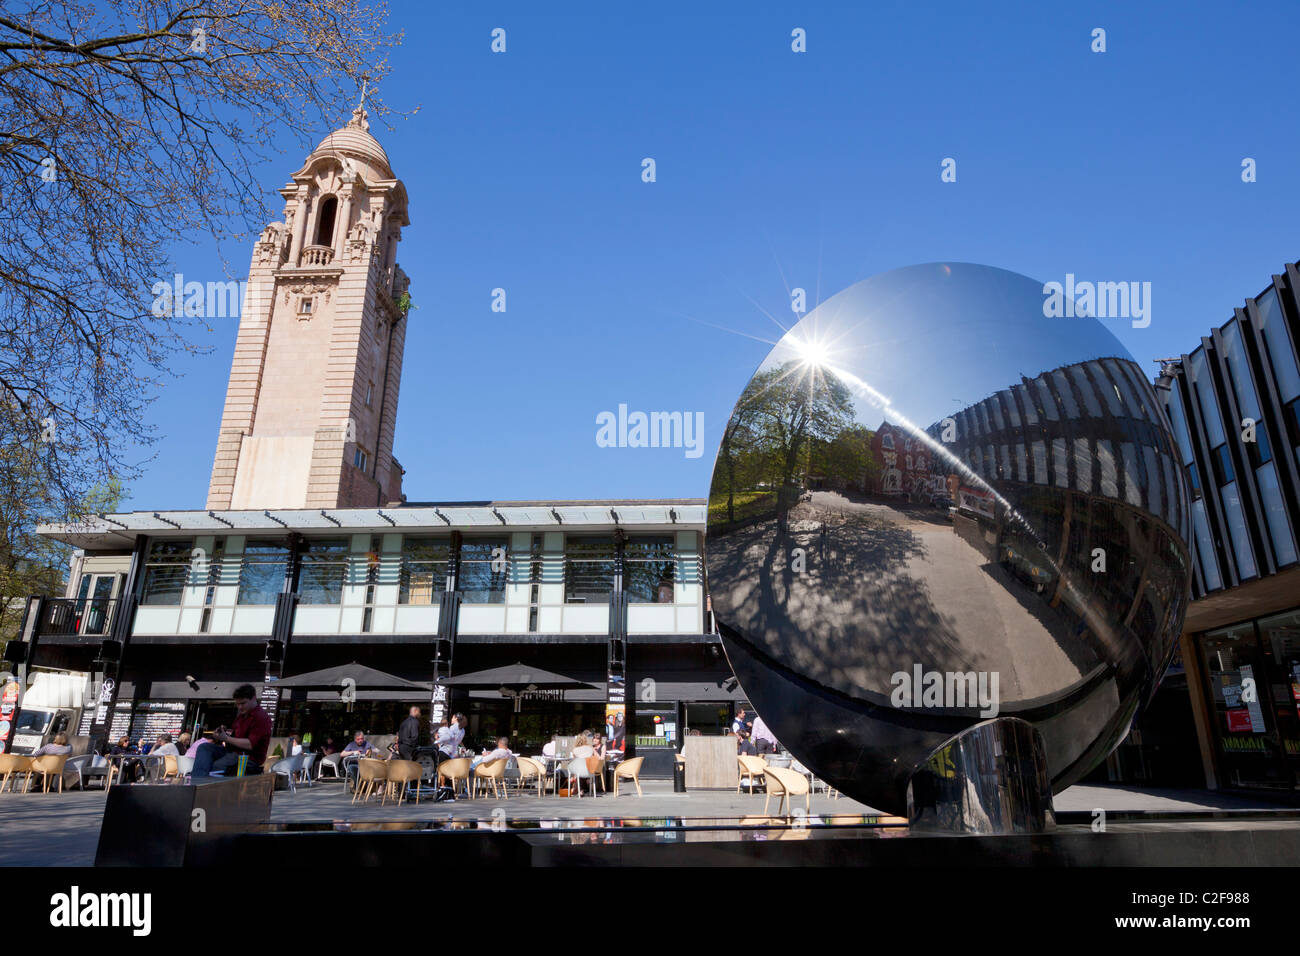 The stainless steel Sky Mirror outside the Nottingham Playhouse theatre Nottingham England GB UK EU Europe - Stock Image